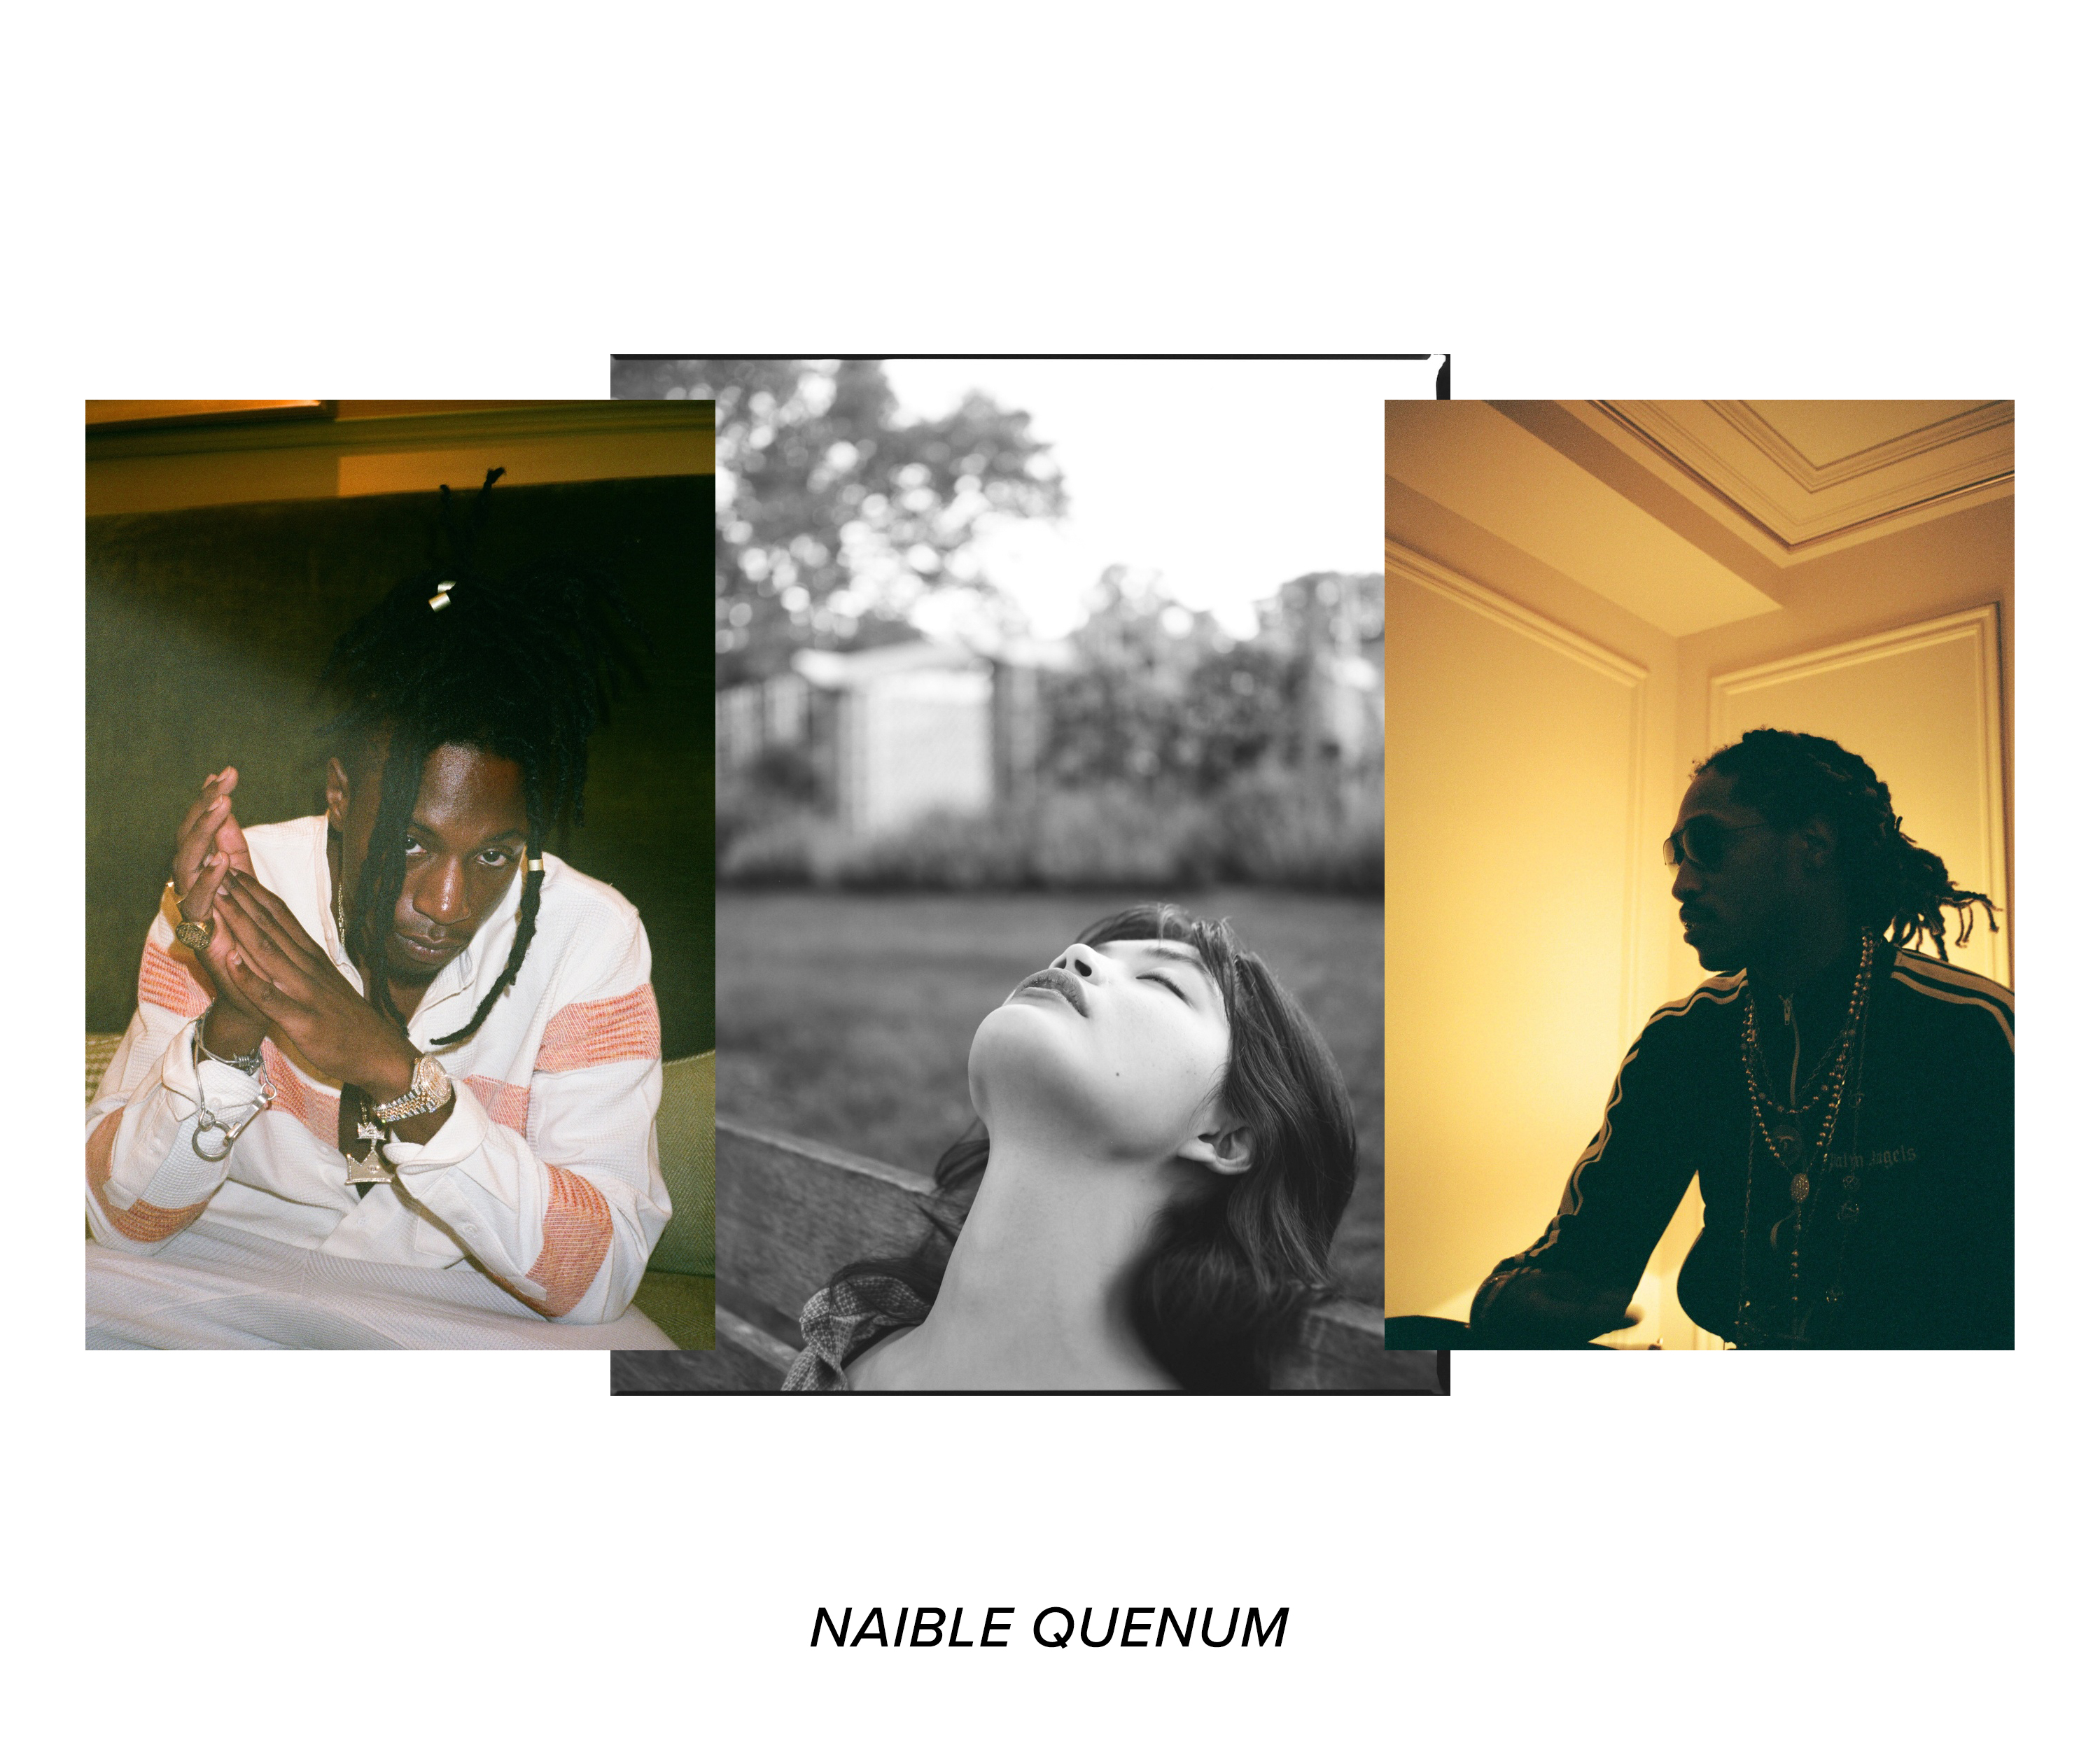 Nabile Quenum - 19 Photographers Taking Photos of Your Favorite Models and Designers - FilterGrade